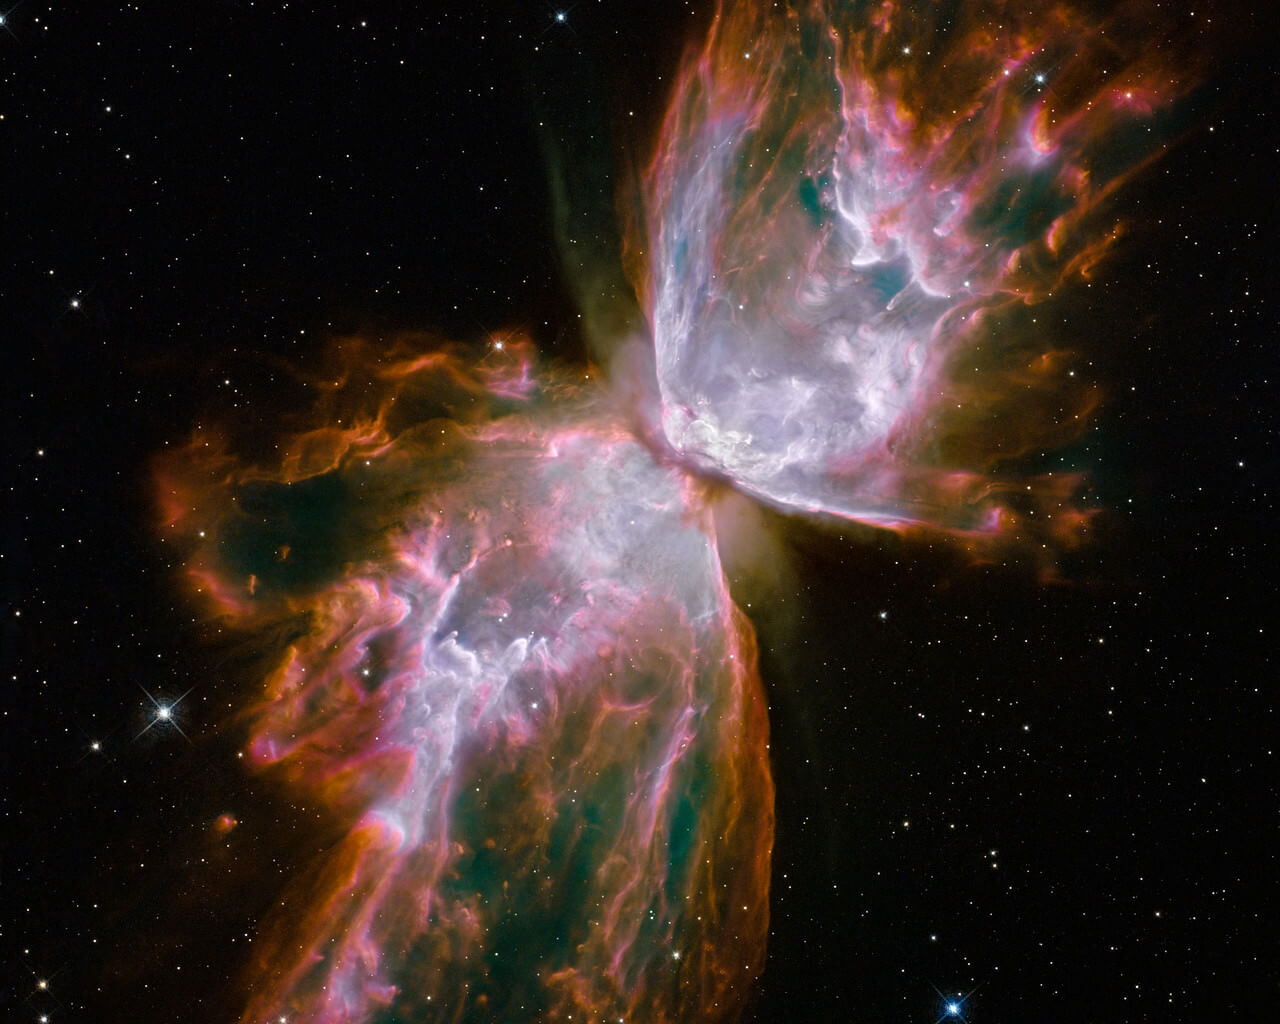 space is so cool - hubble pictures 13 (1)